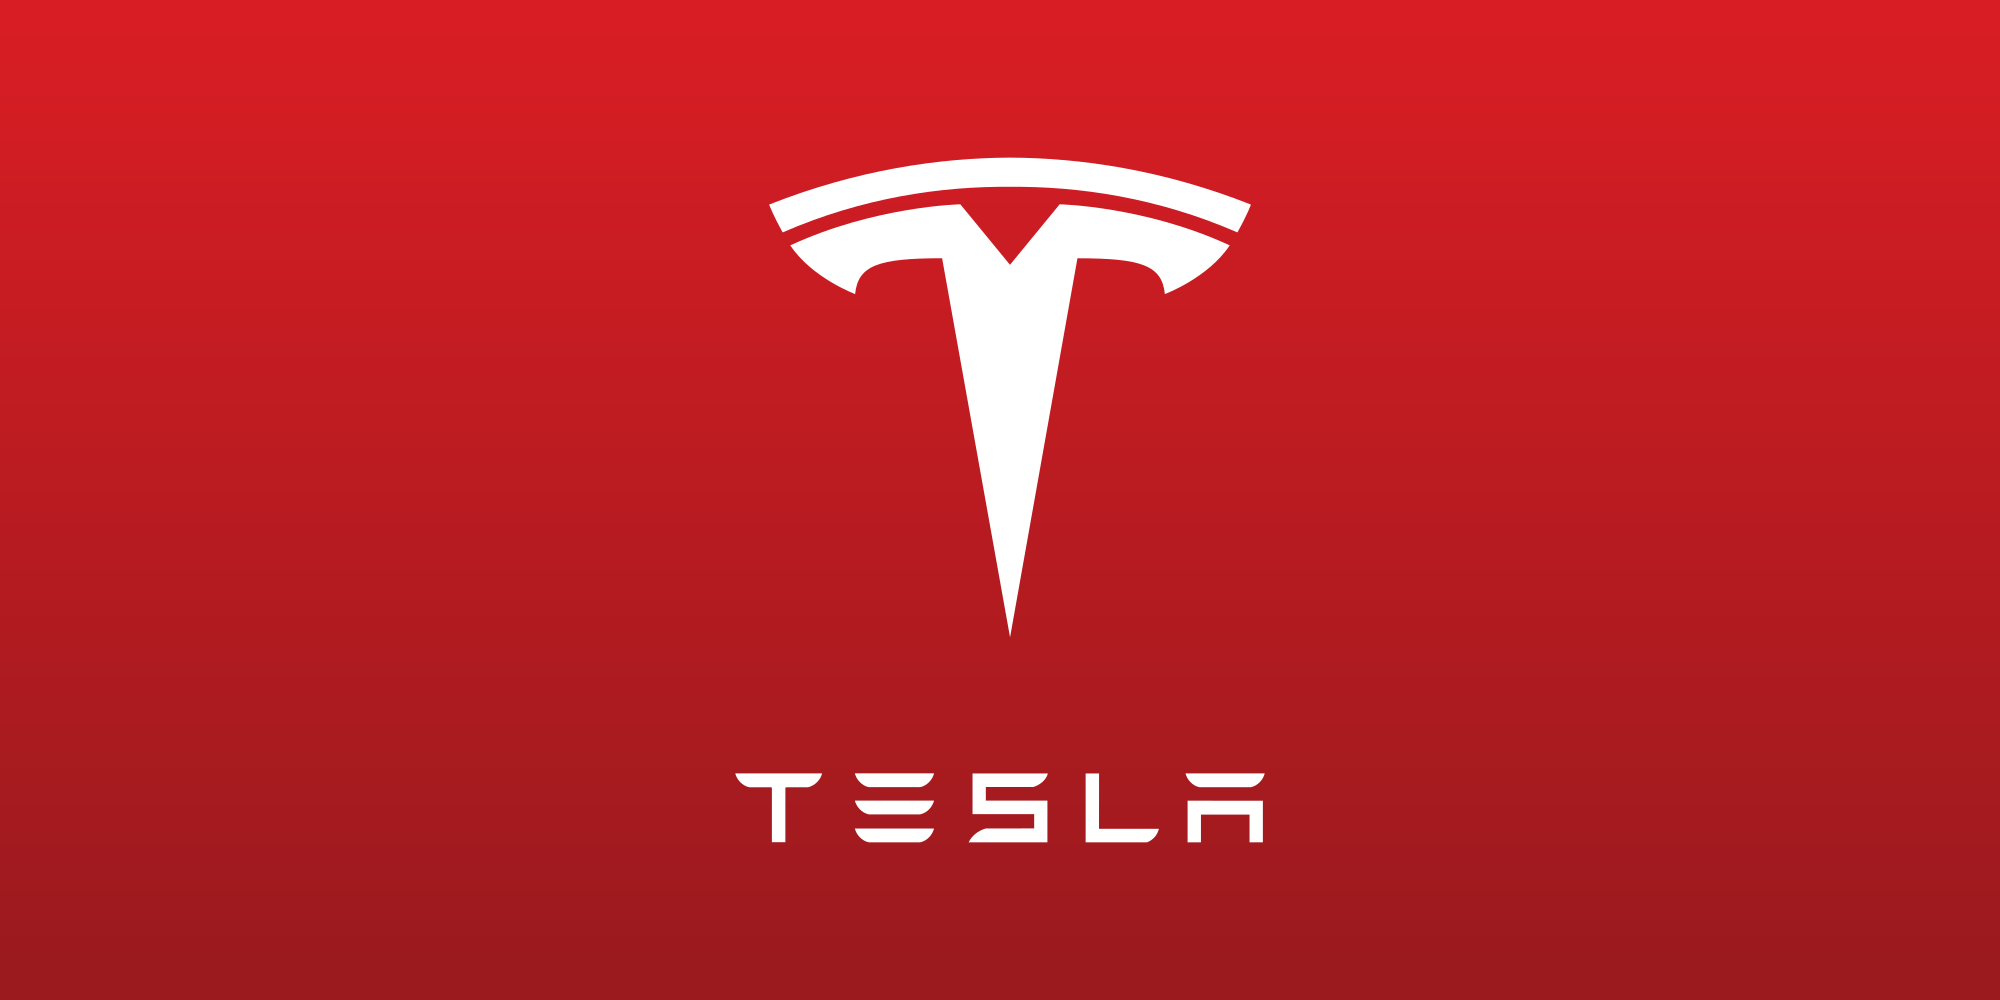 Tesla Brand Technology Characteristics Features And Logo